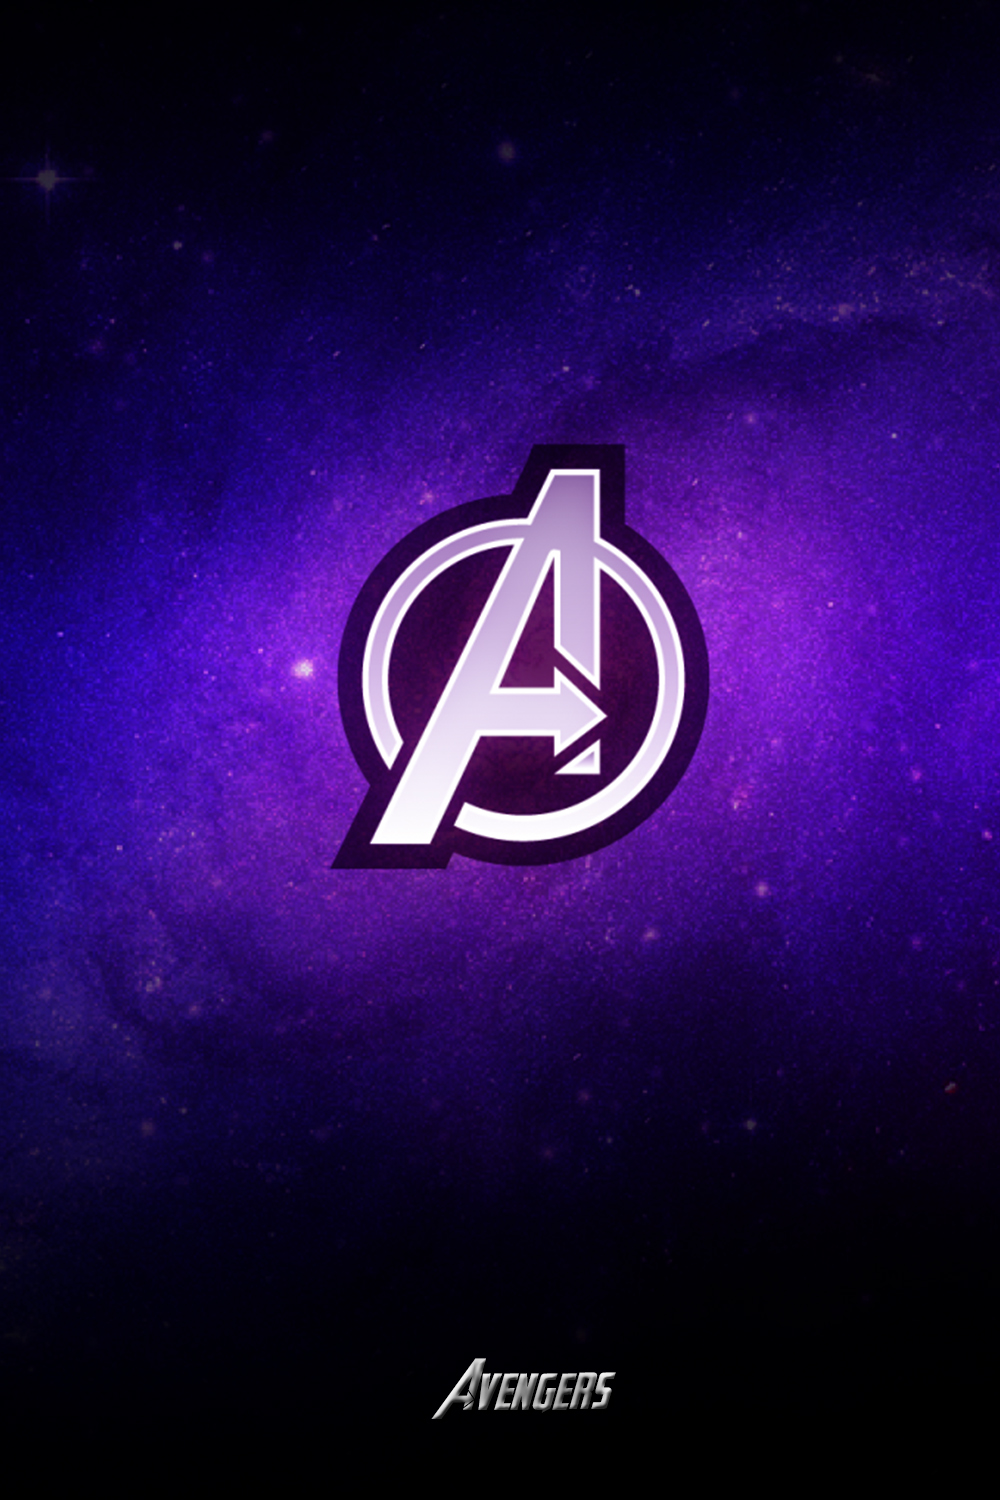 Avengers Endgame Wallpaper Iphone With Images Avengers Pictures Avengers Wallpaper Marvel